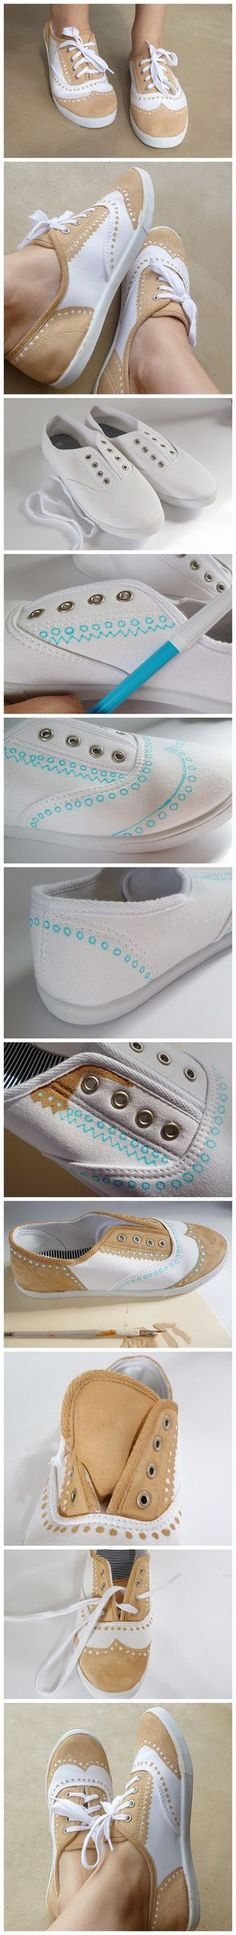 Easy DIY! Schuhe textilfarbe